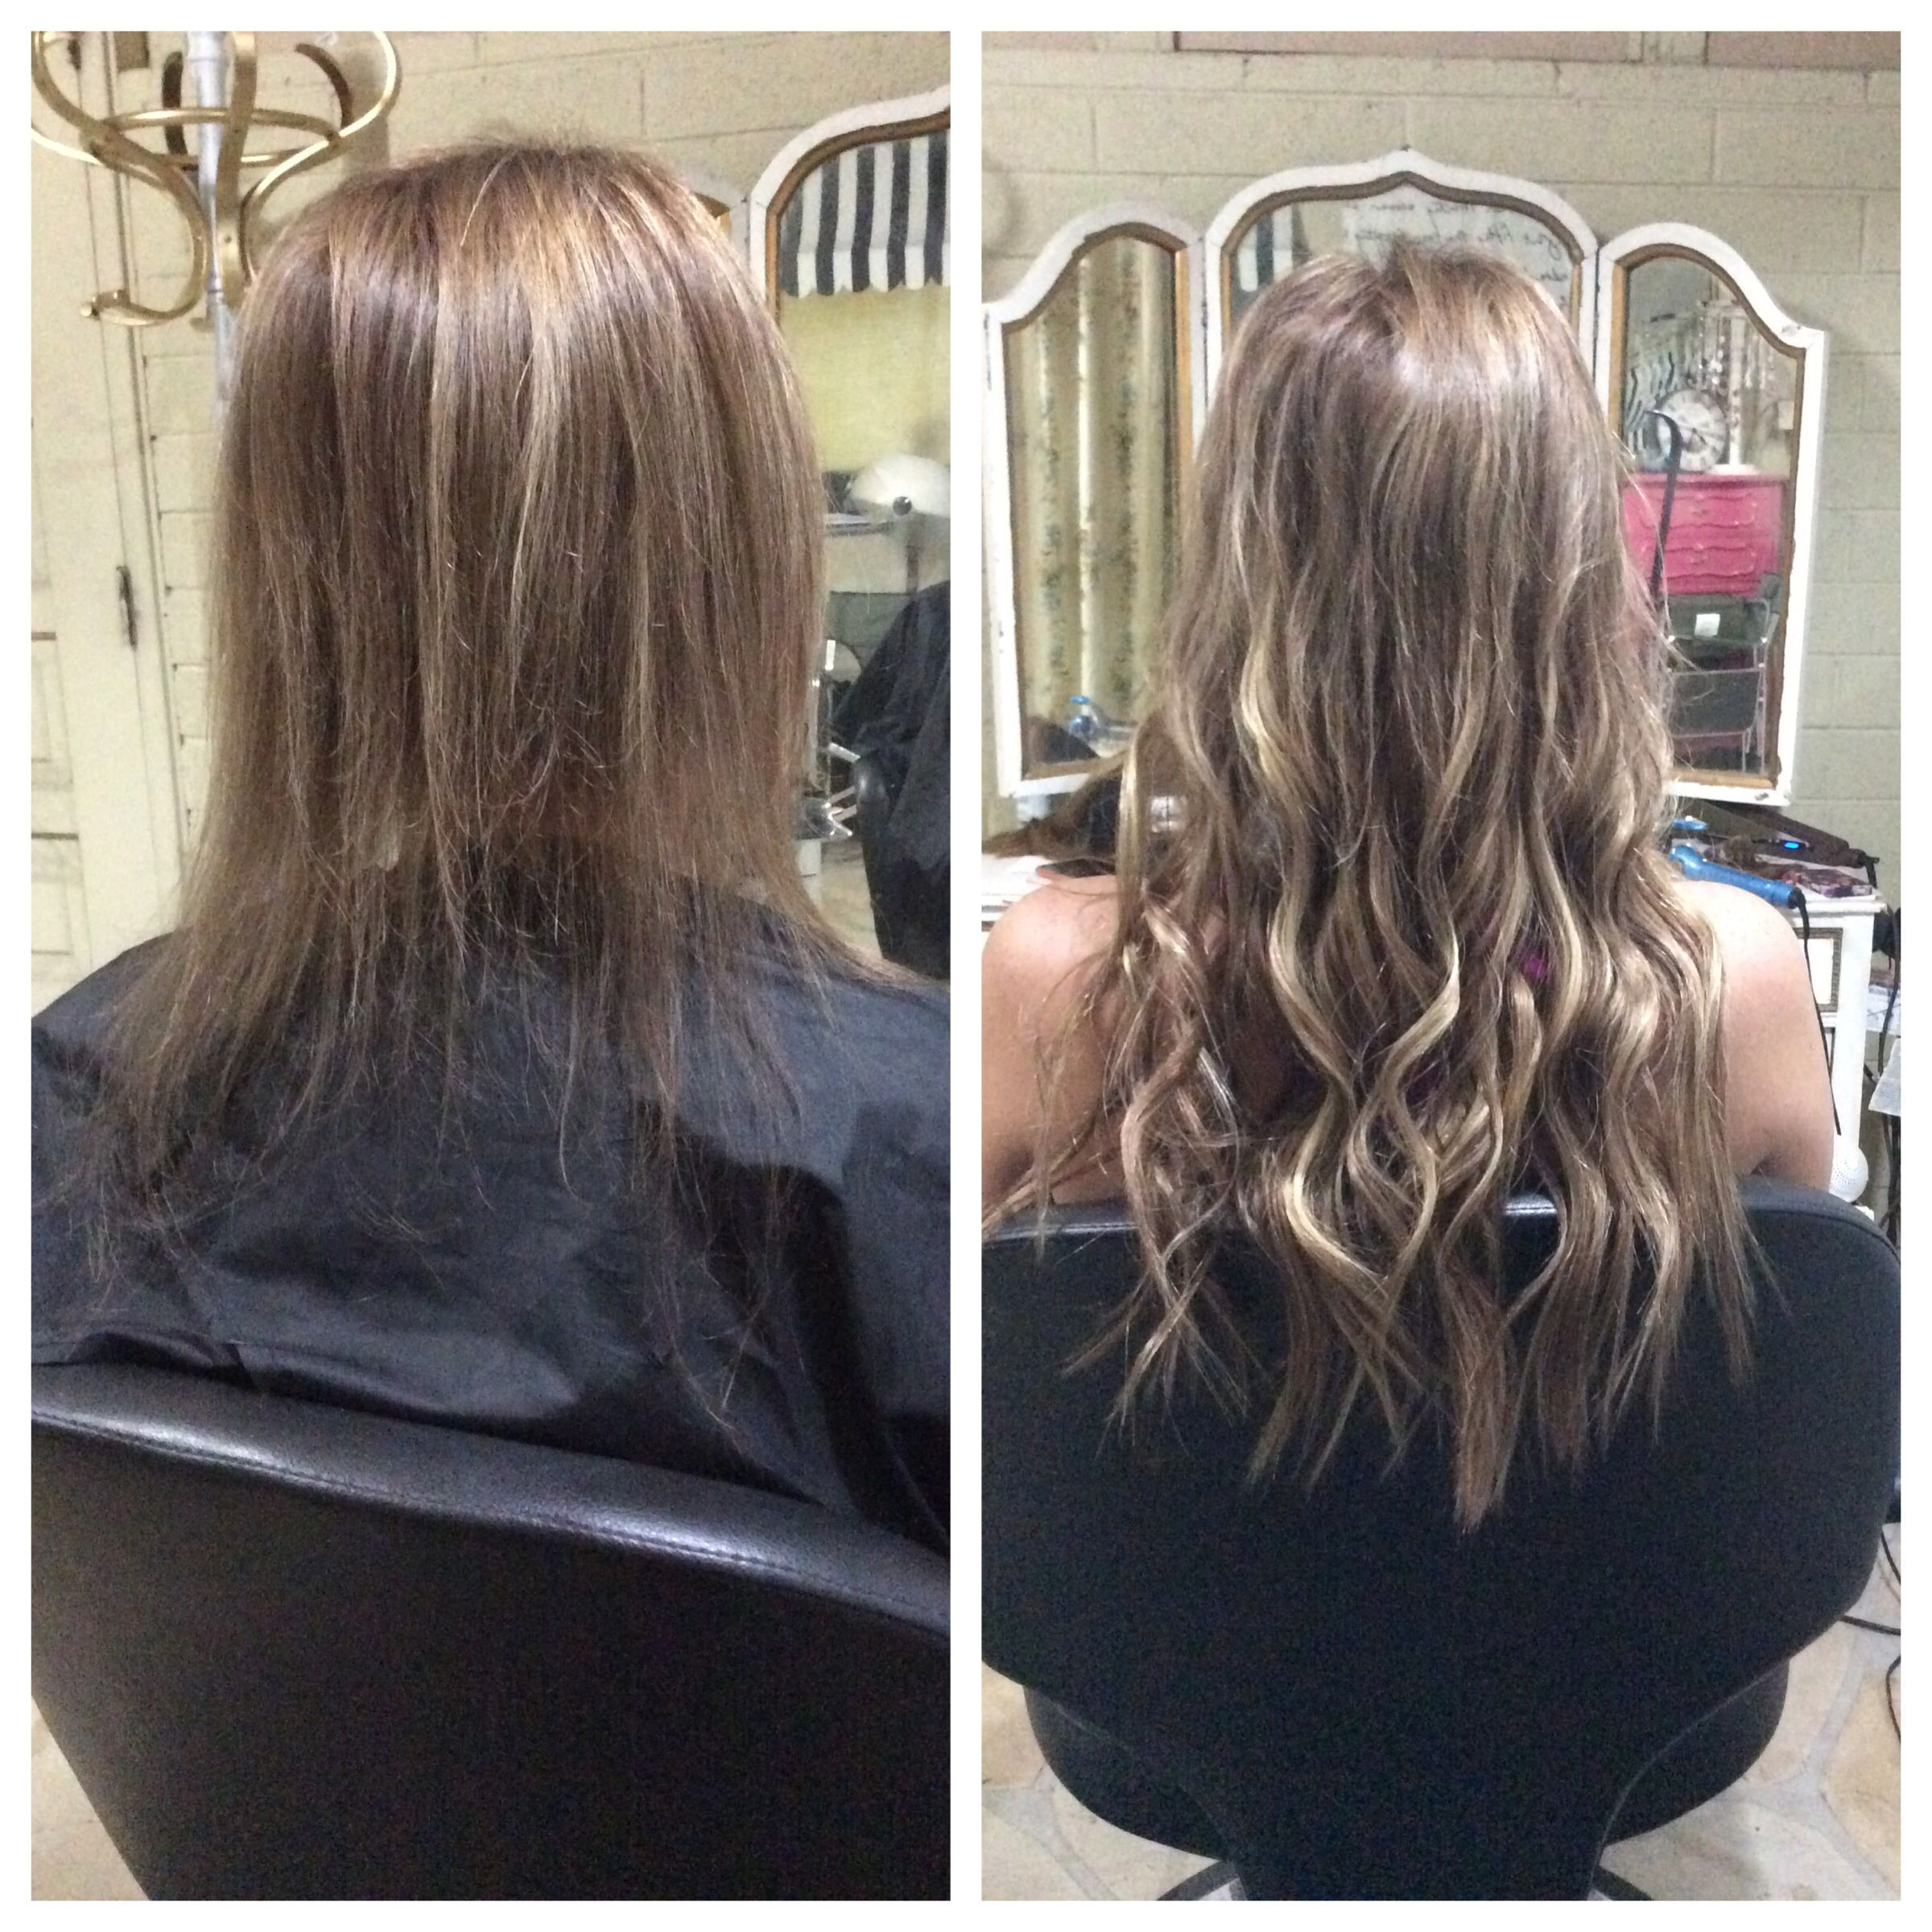 Hair Extensions Before And After With Natural Beaded Rows Great For